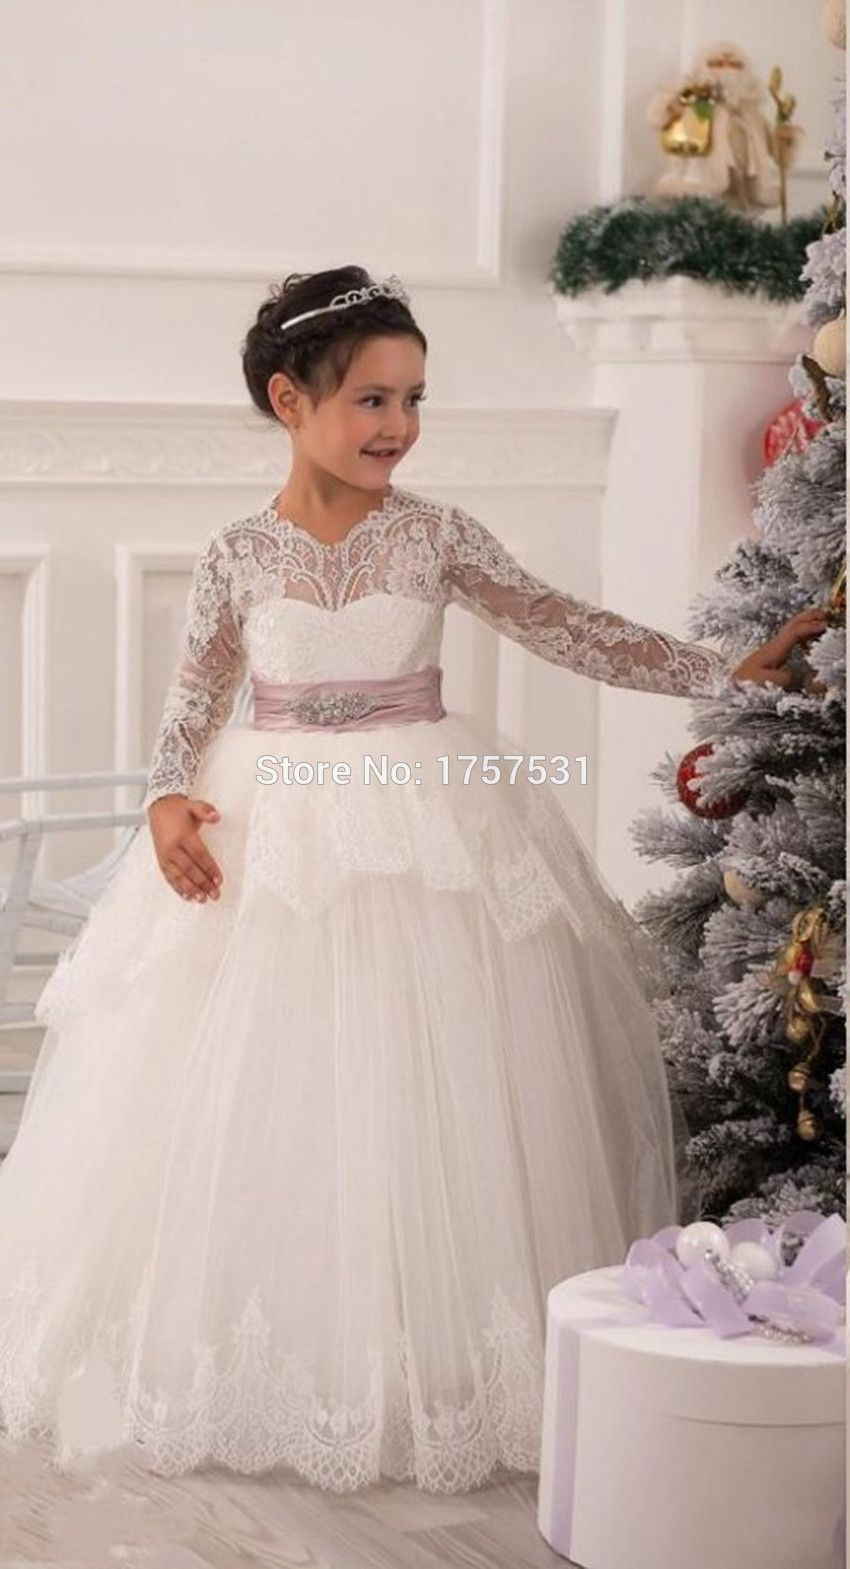 Cheap dress suits for kids buy quality dress up time prom dresses